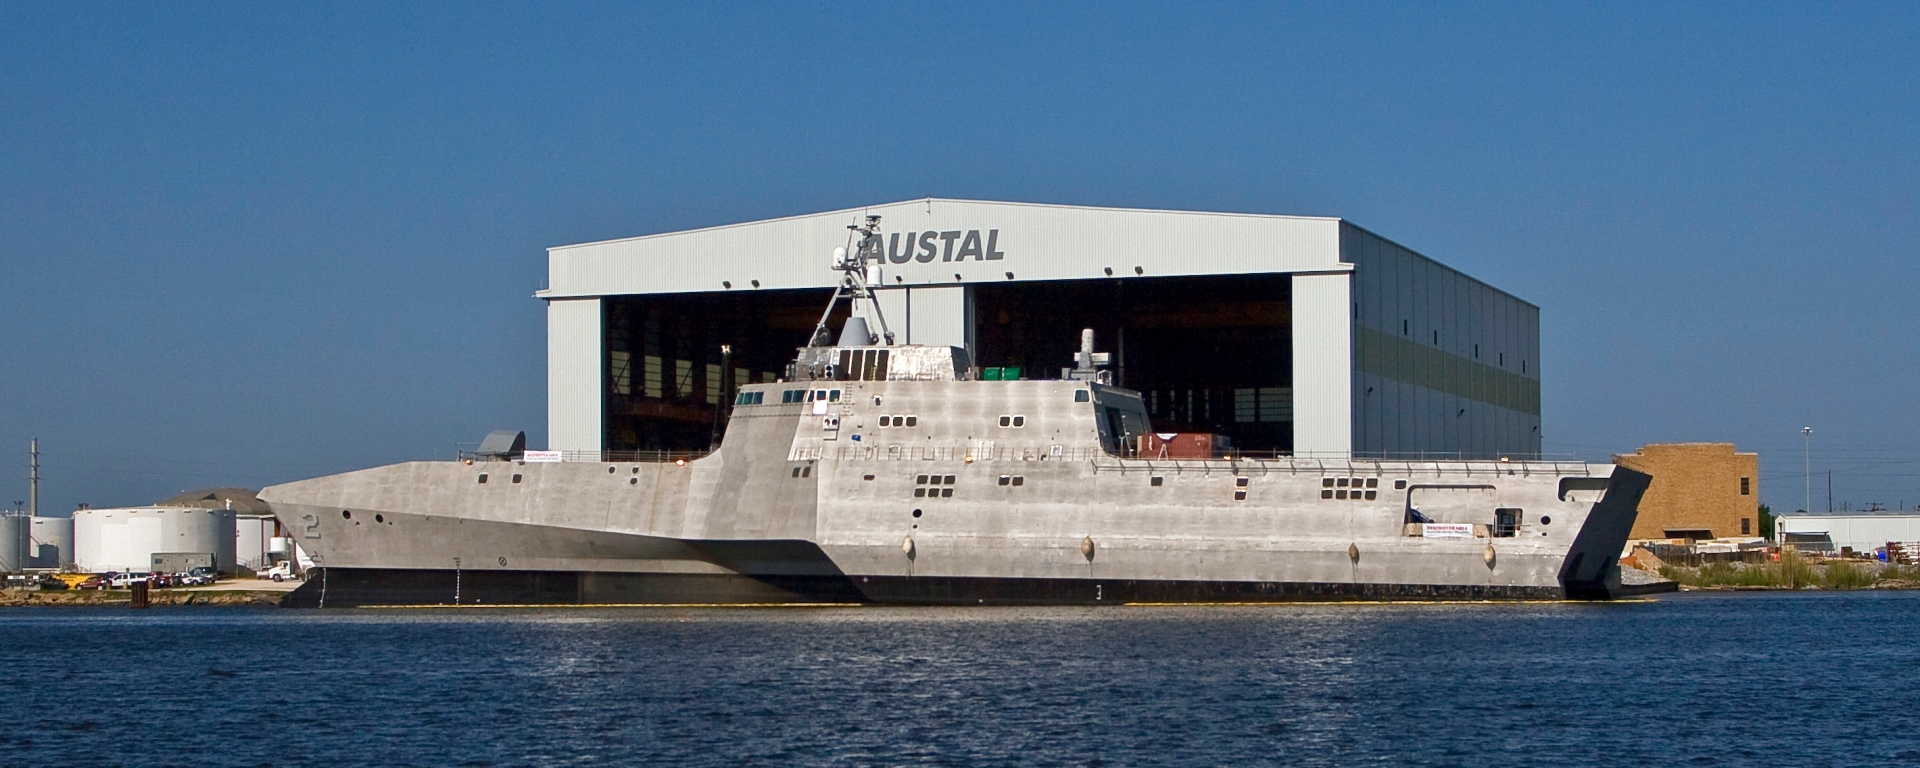 Austal Announces Aulong JV Secures Contracts for Four New High Speed